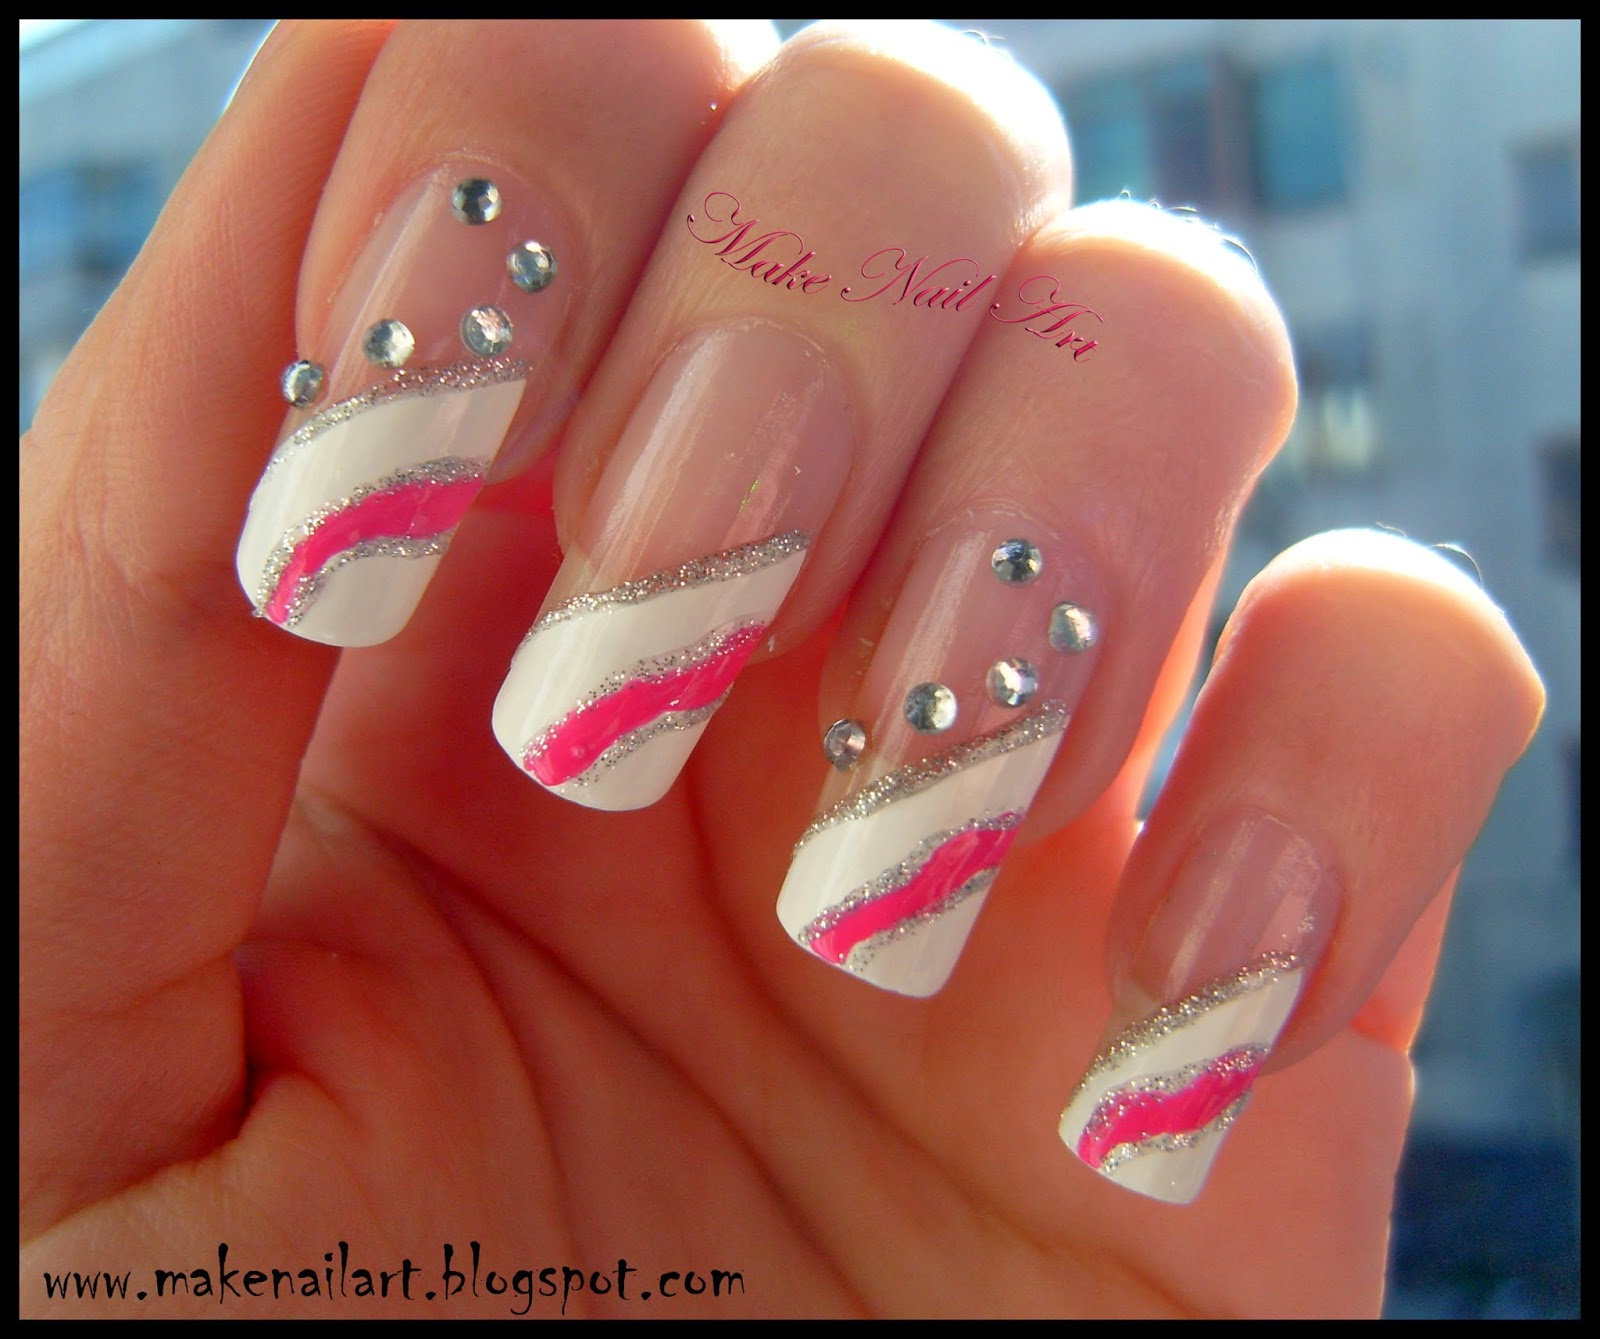 Pink For Prom Nail Ideas: Make Nail Art: White And Pink Prom Nails Nail Art Tutorial